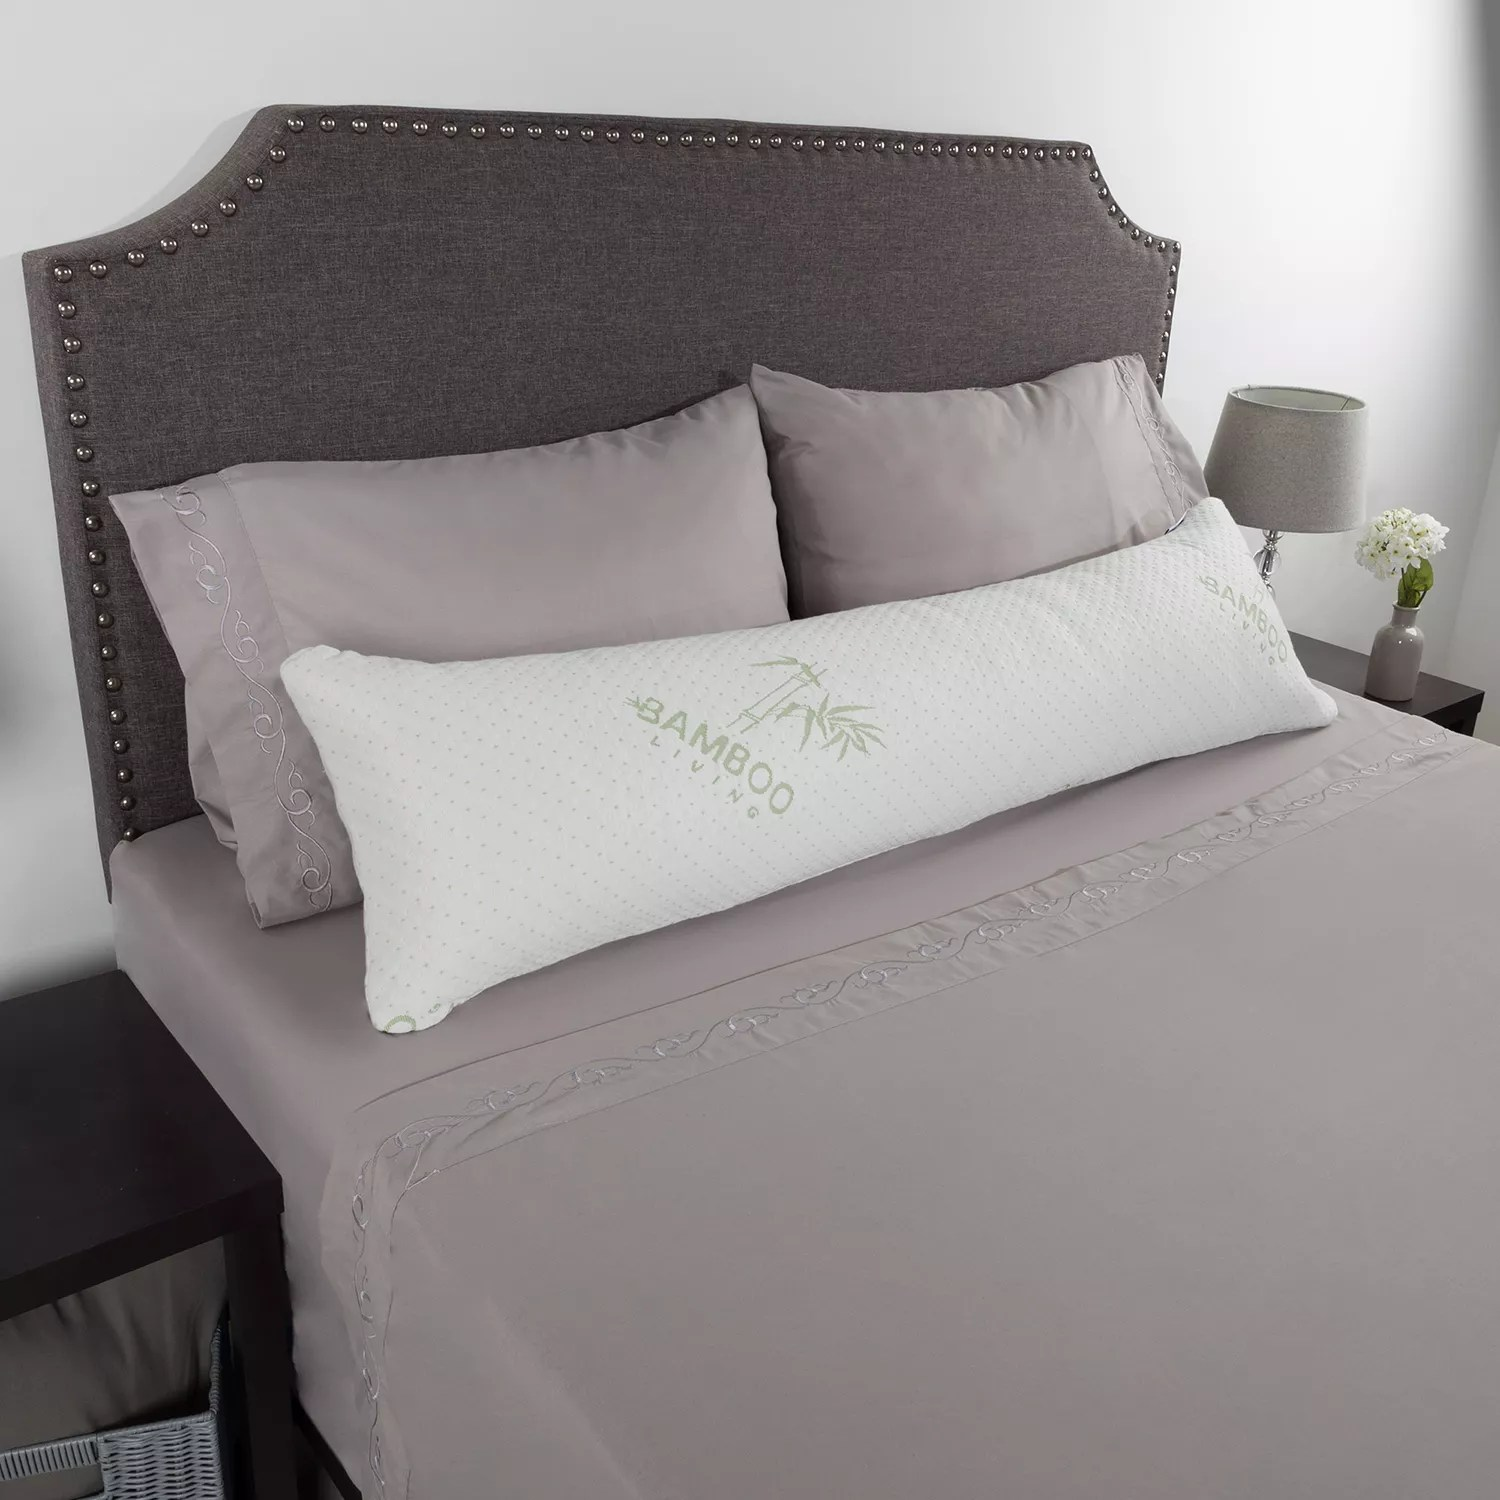 portsmouth home charcoal infused memory foam body pillow